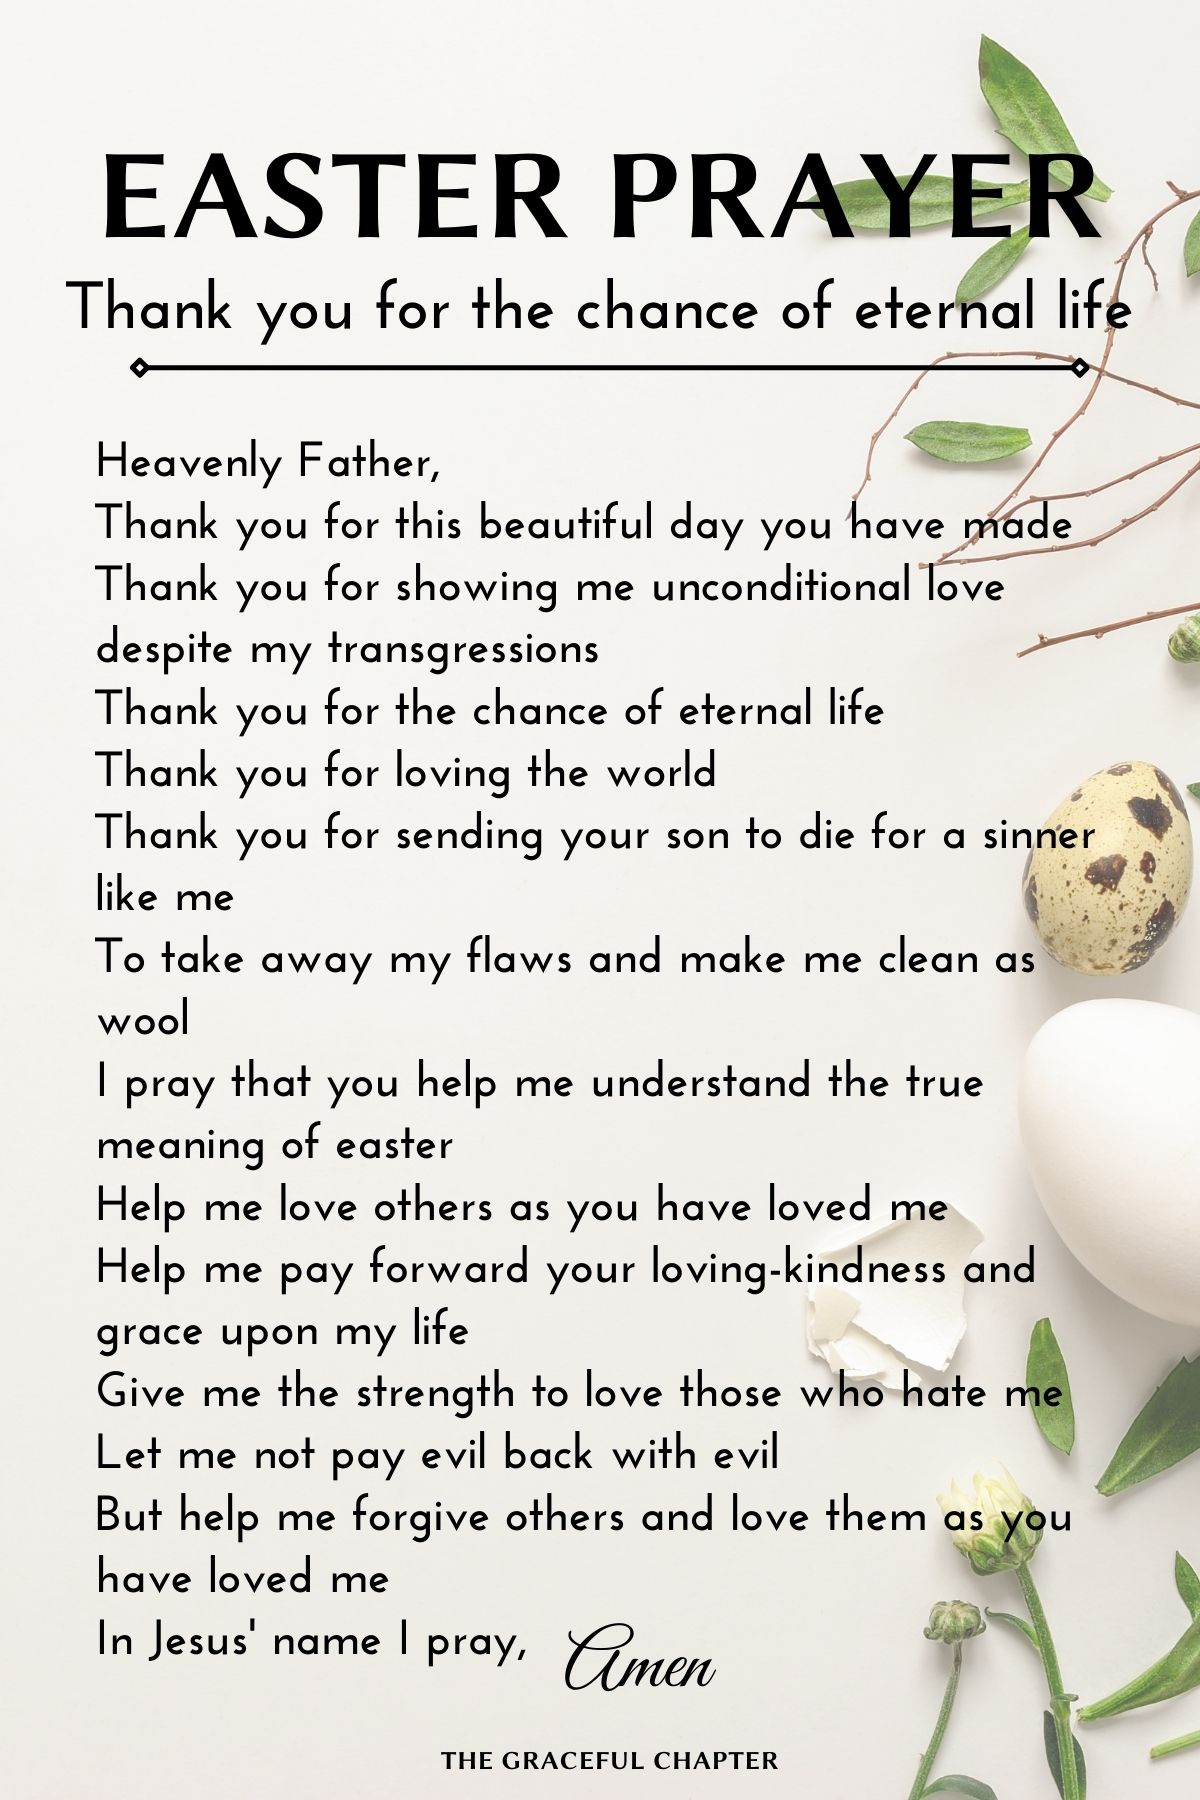 thank you for the chance of eternal life